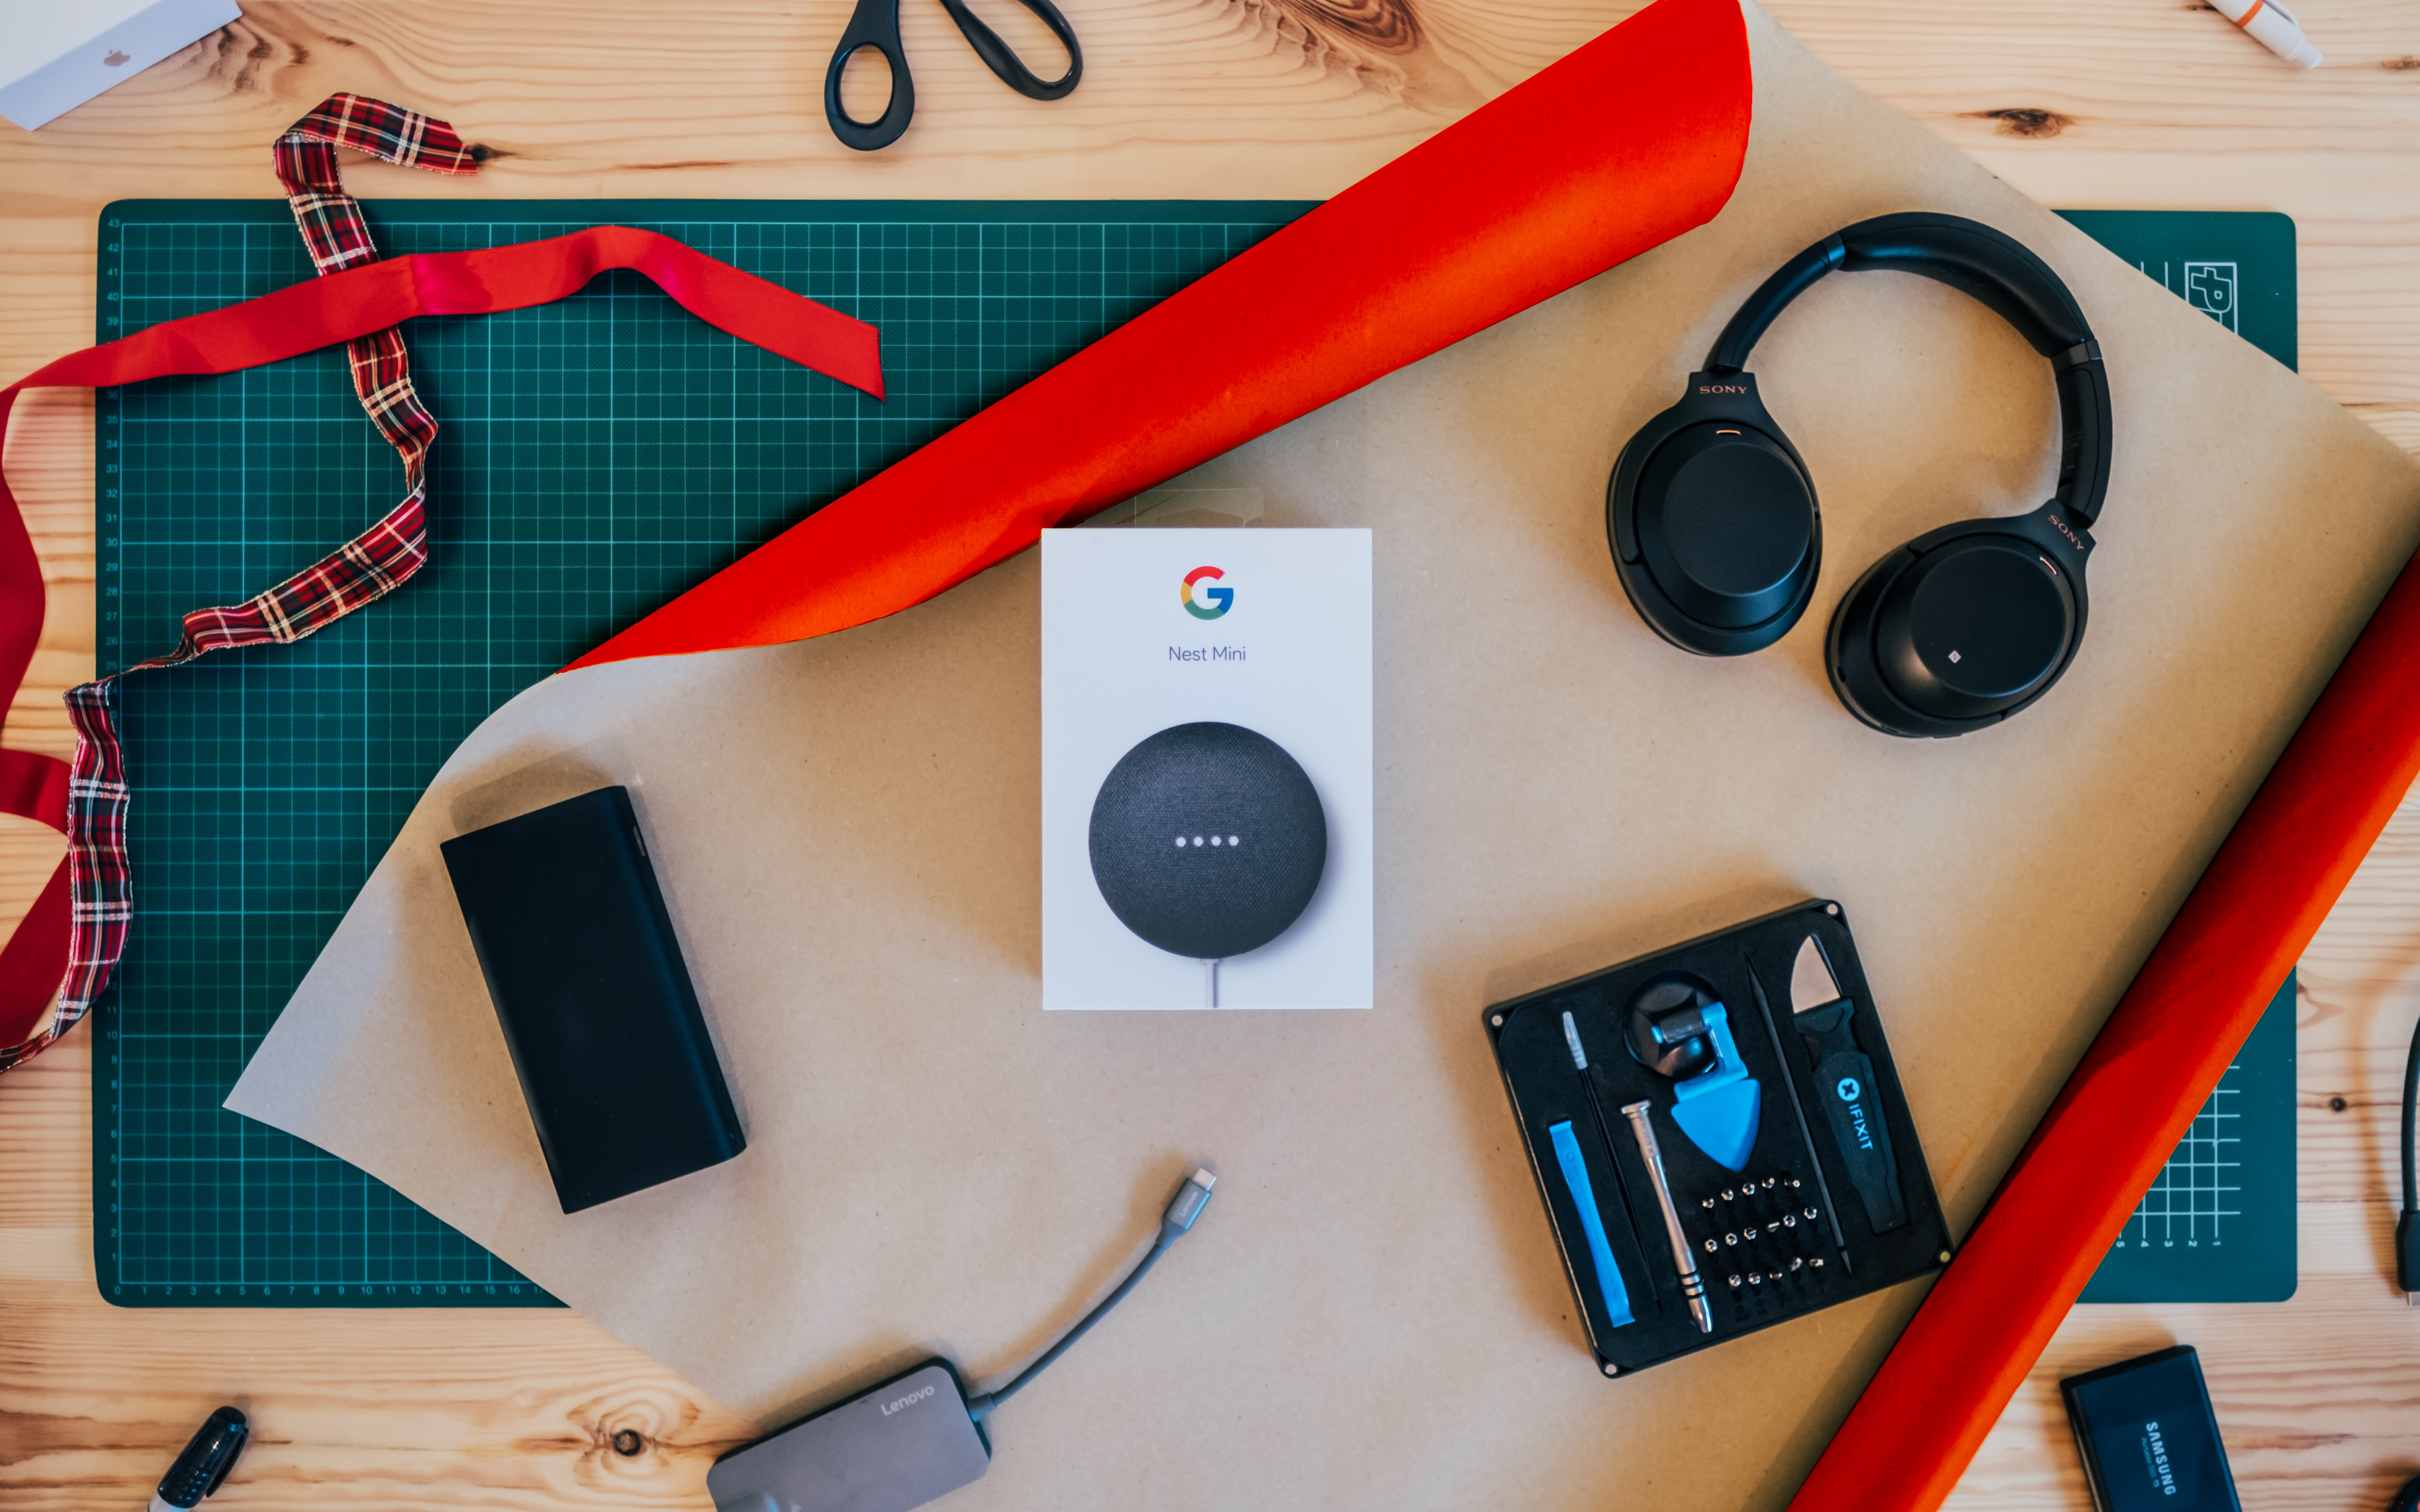 Google mini on a table surrounded by different electronics